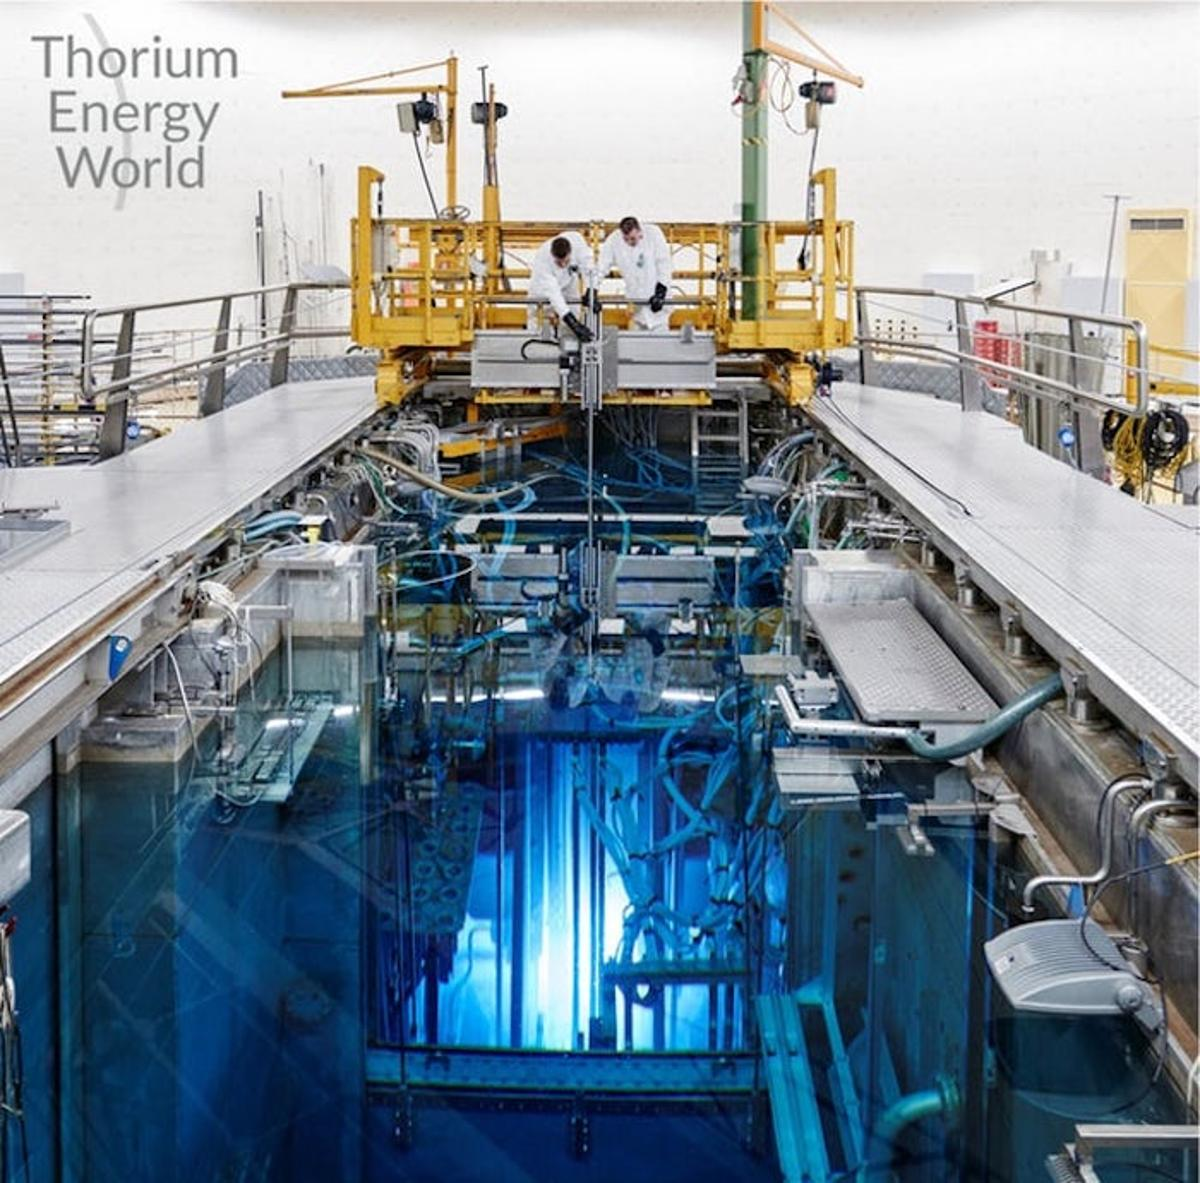 According to a new Russian study, thorium reactors could provide a safer alternative to nuclear energy, while also safely disposing of nuclear waste